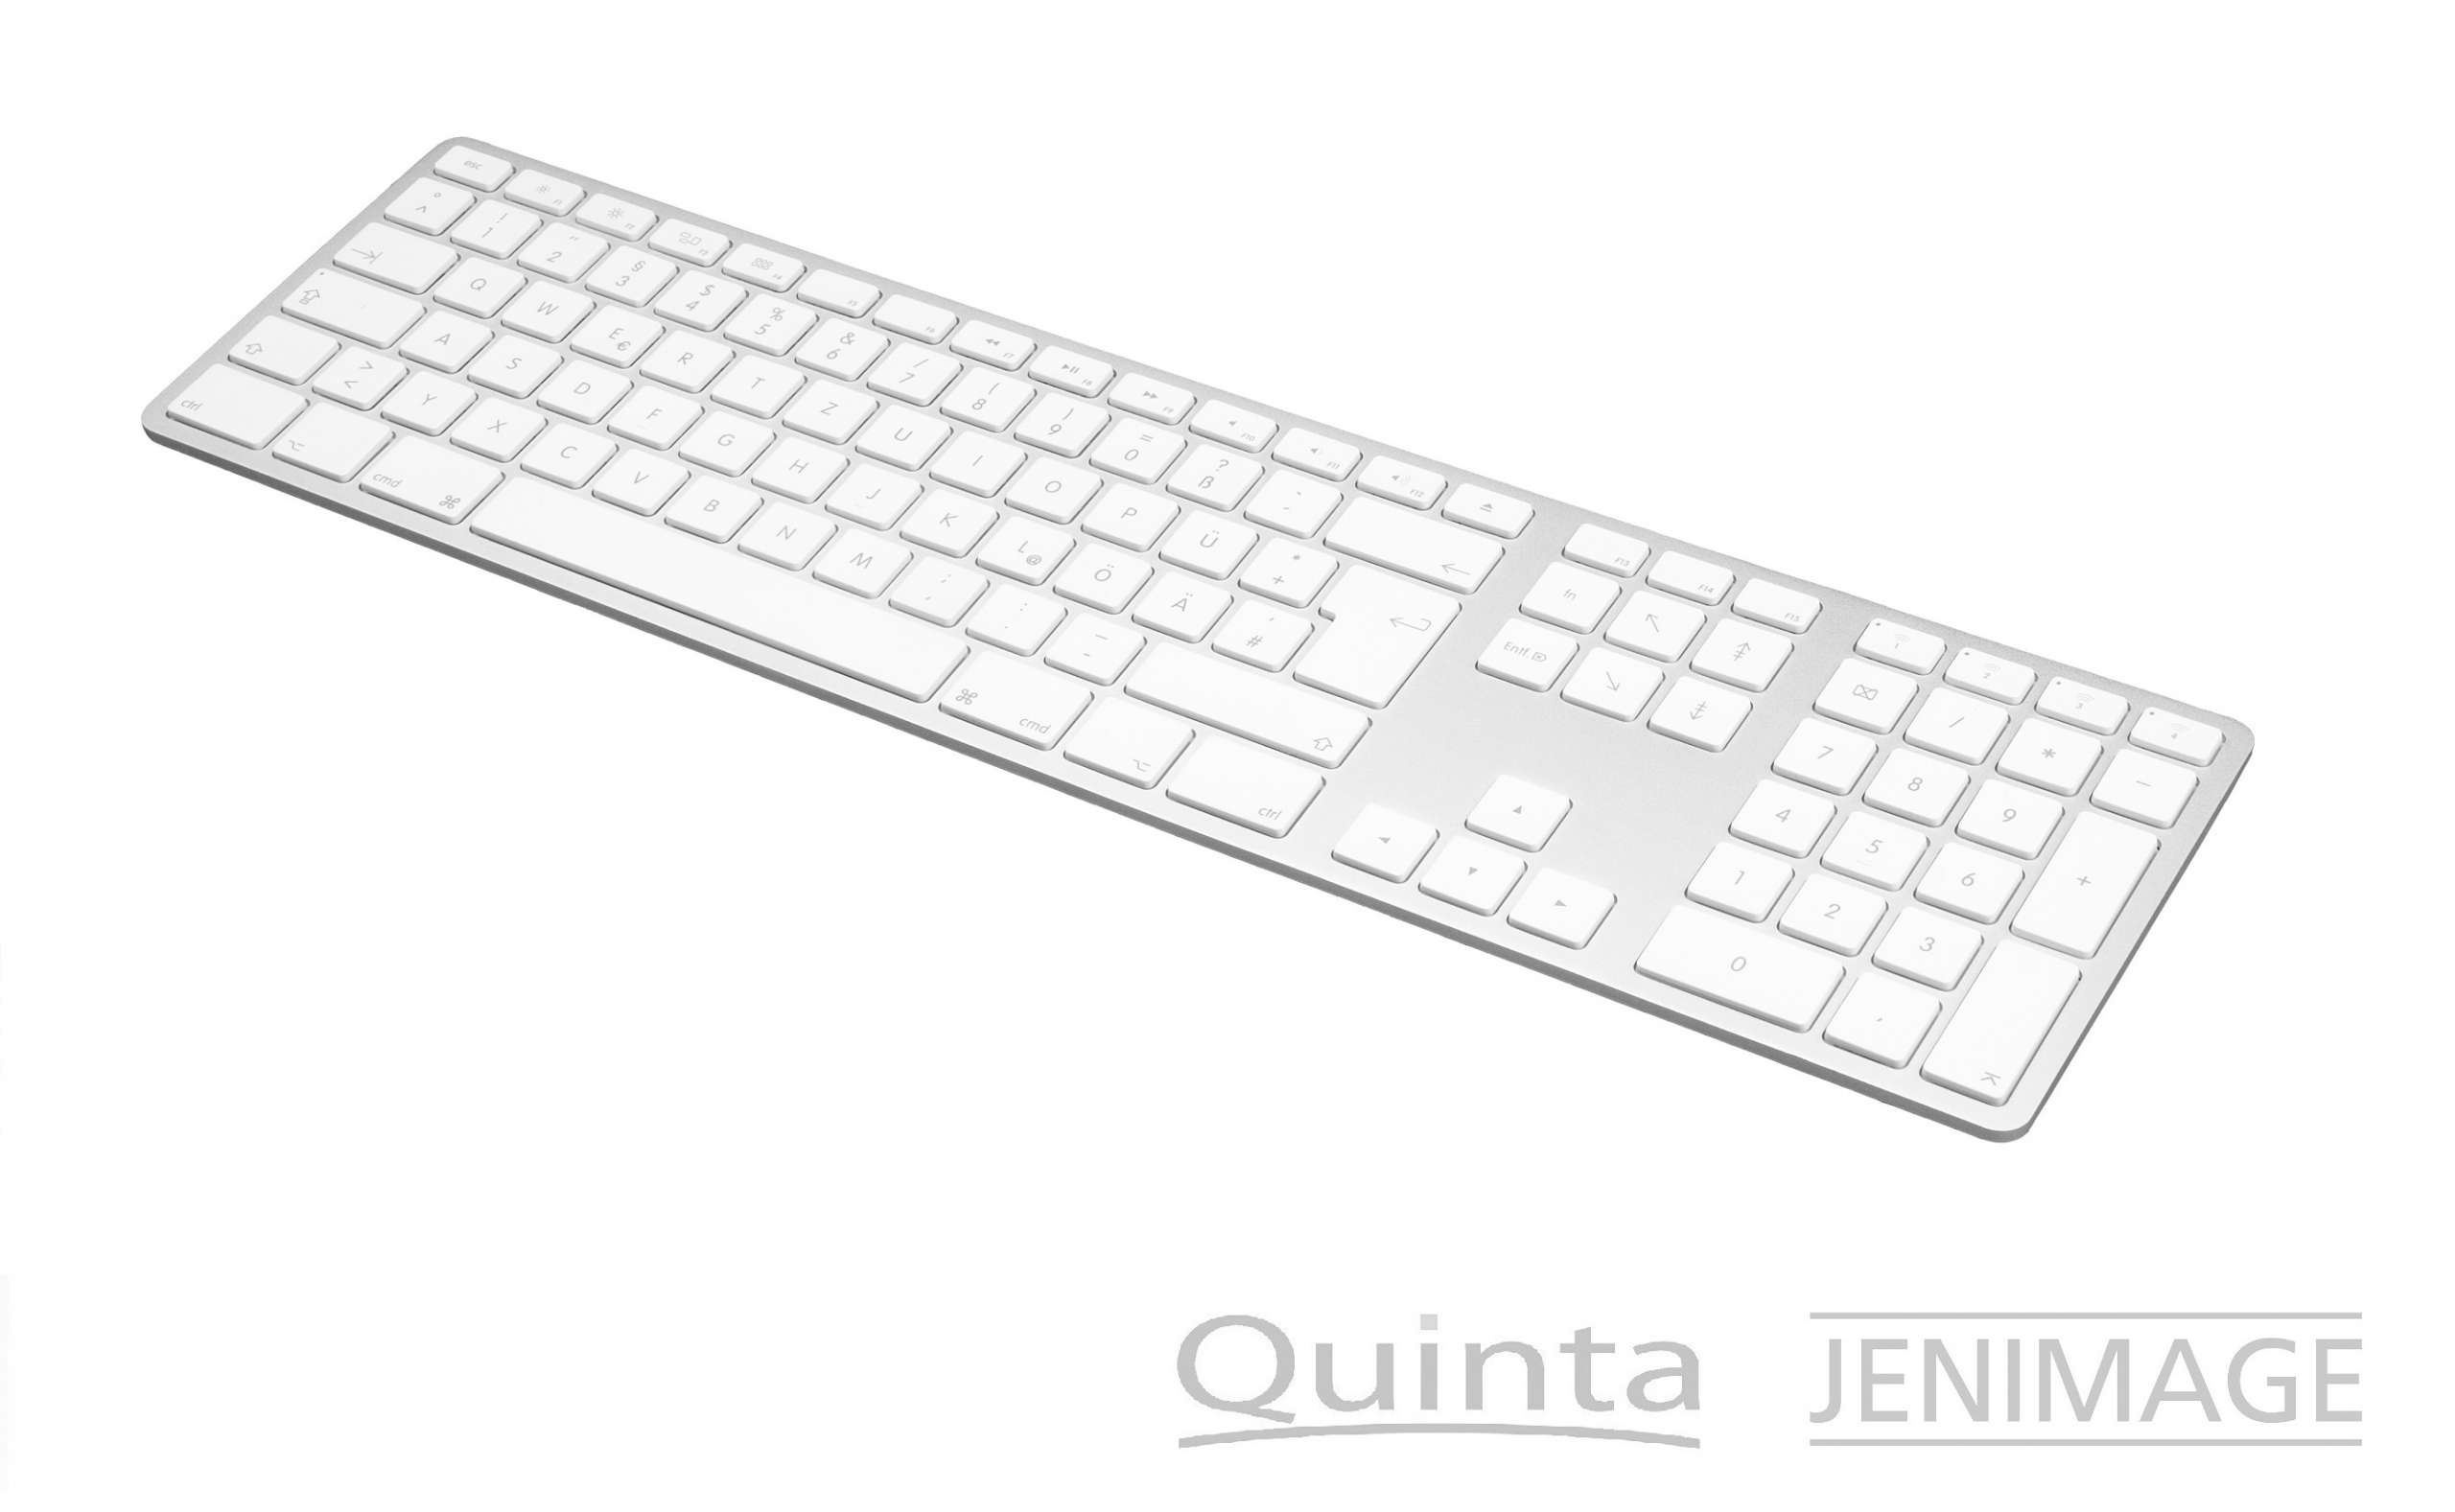 JENIMAGE Wireless Aluminium Keyboard